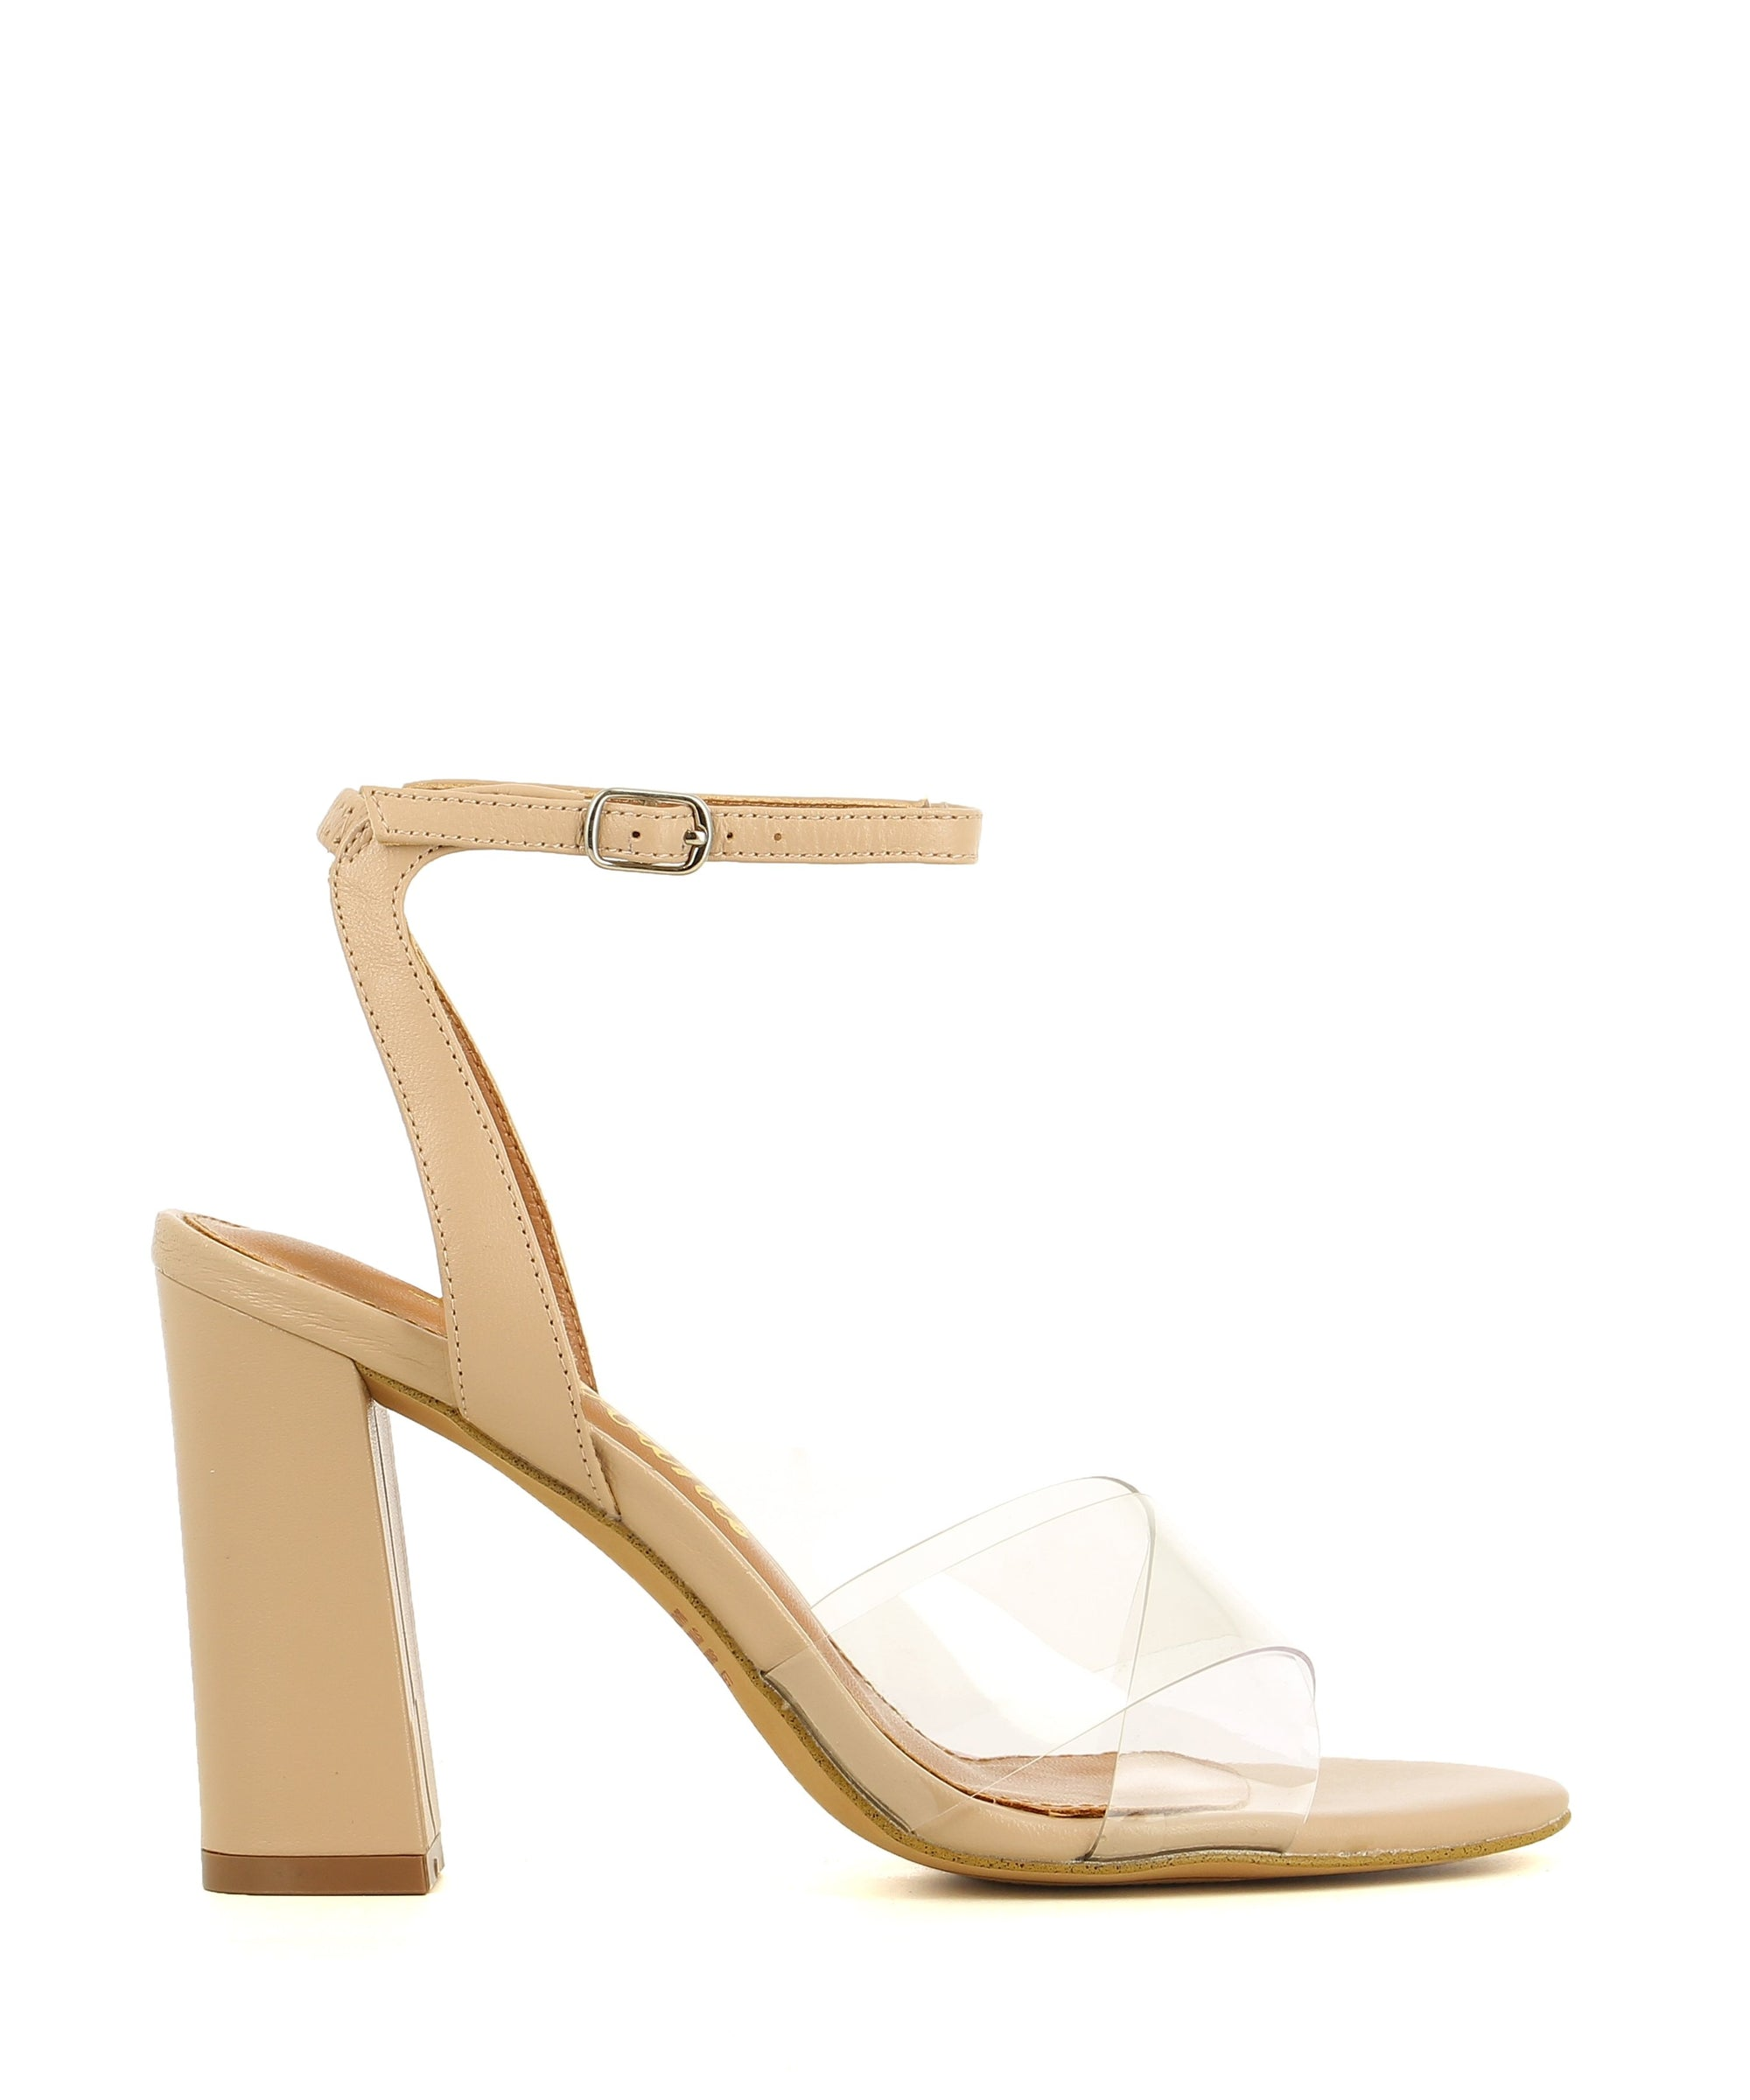 A clear nude high heeled sandal by Diavolina. The 'Moss' features an ankle strap with a buckle fastening, a transparent vinylite crossover upper and a soft round toe.